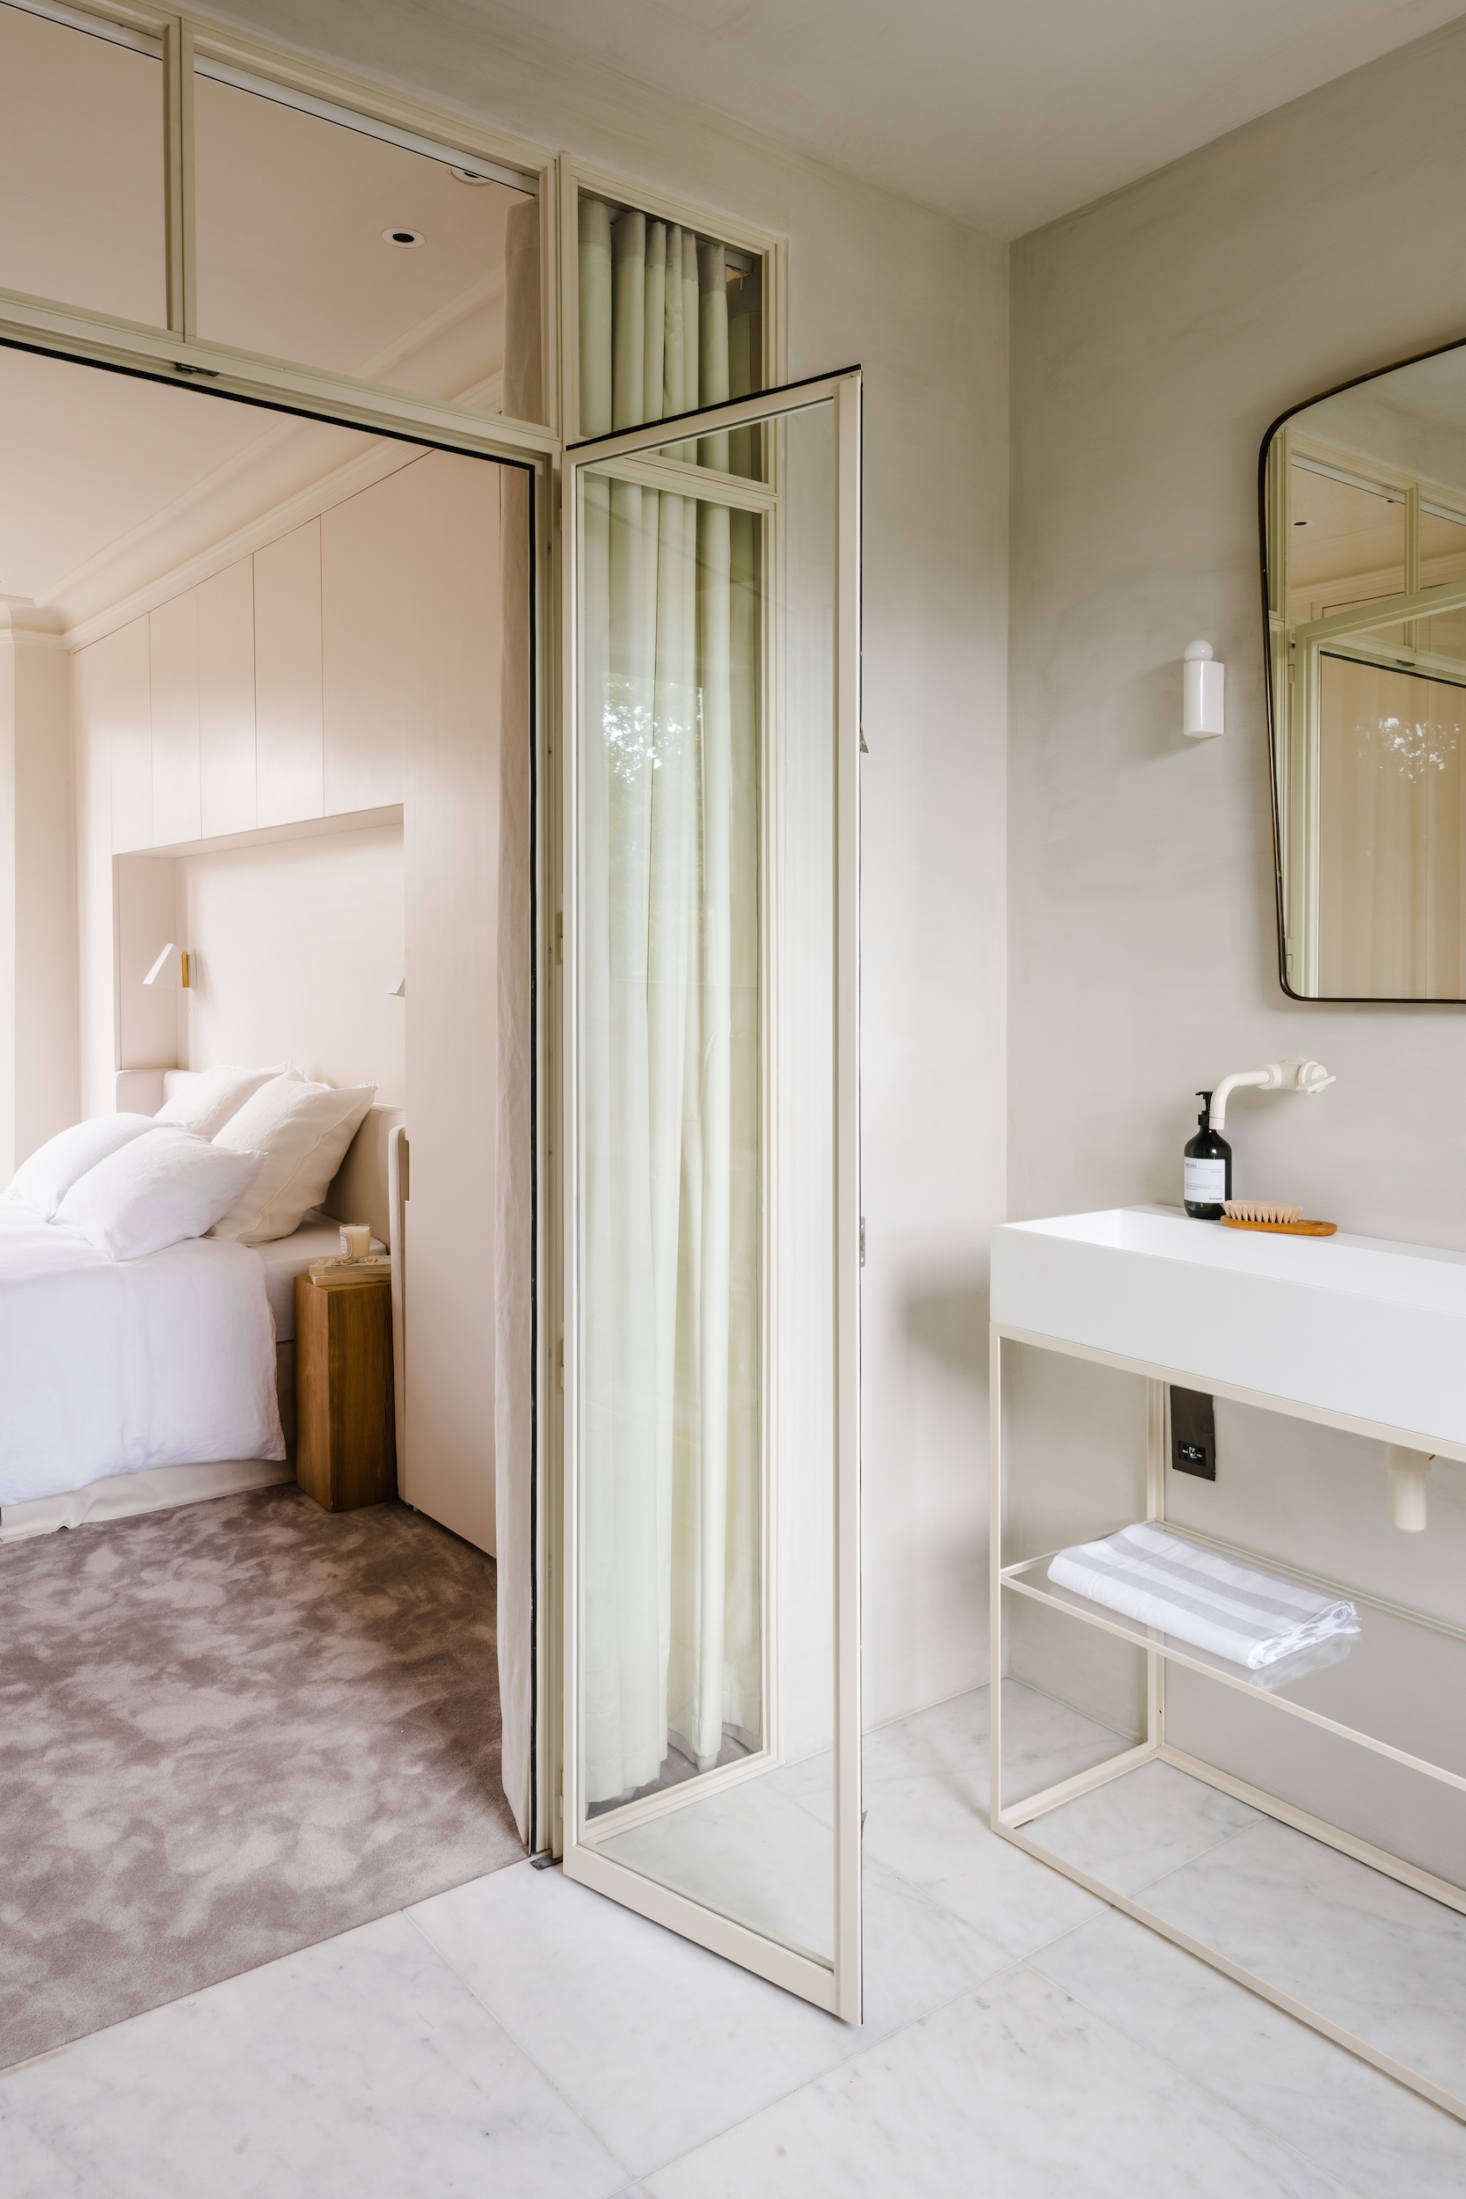 A steel and glass partition separates the bedroom from the bath. The custom vanity unit is from Iusso Stone.